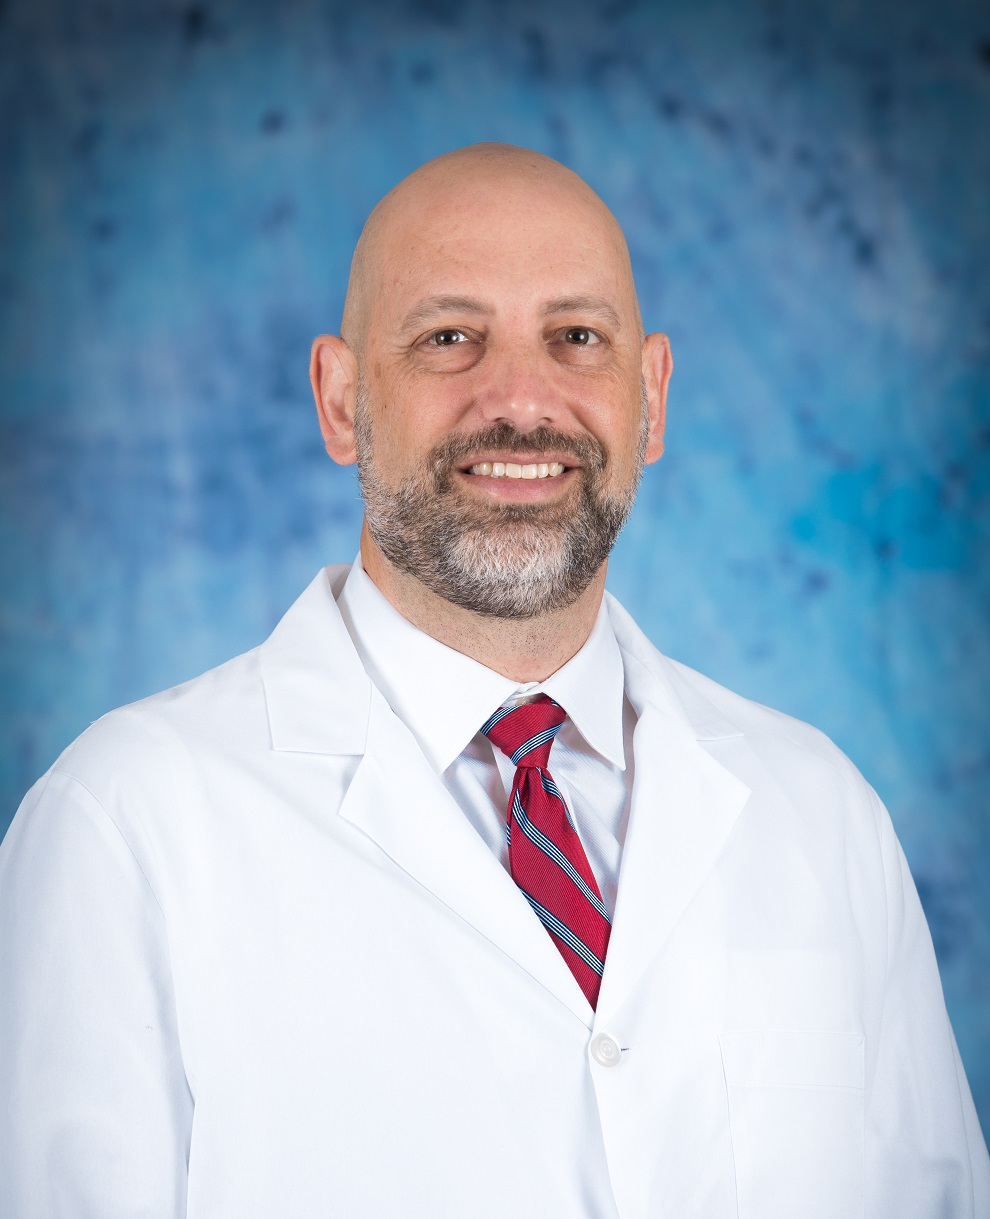 Daniel Cordas, MD of Smoky Mountain Orthopedics